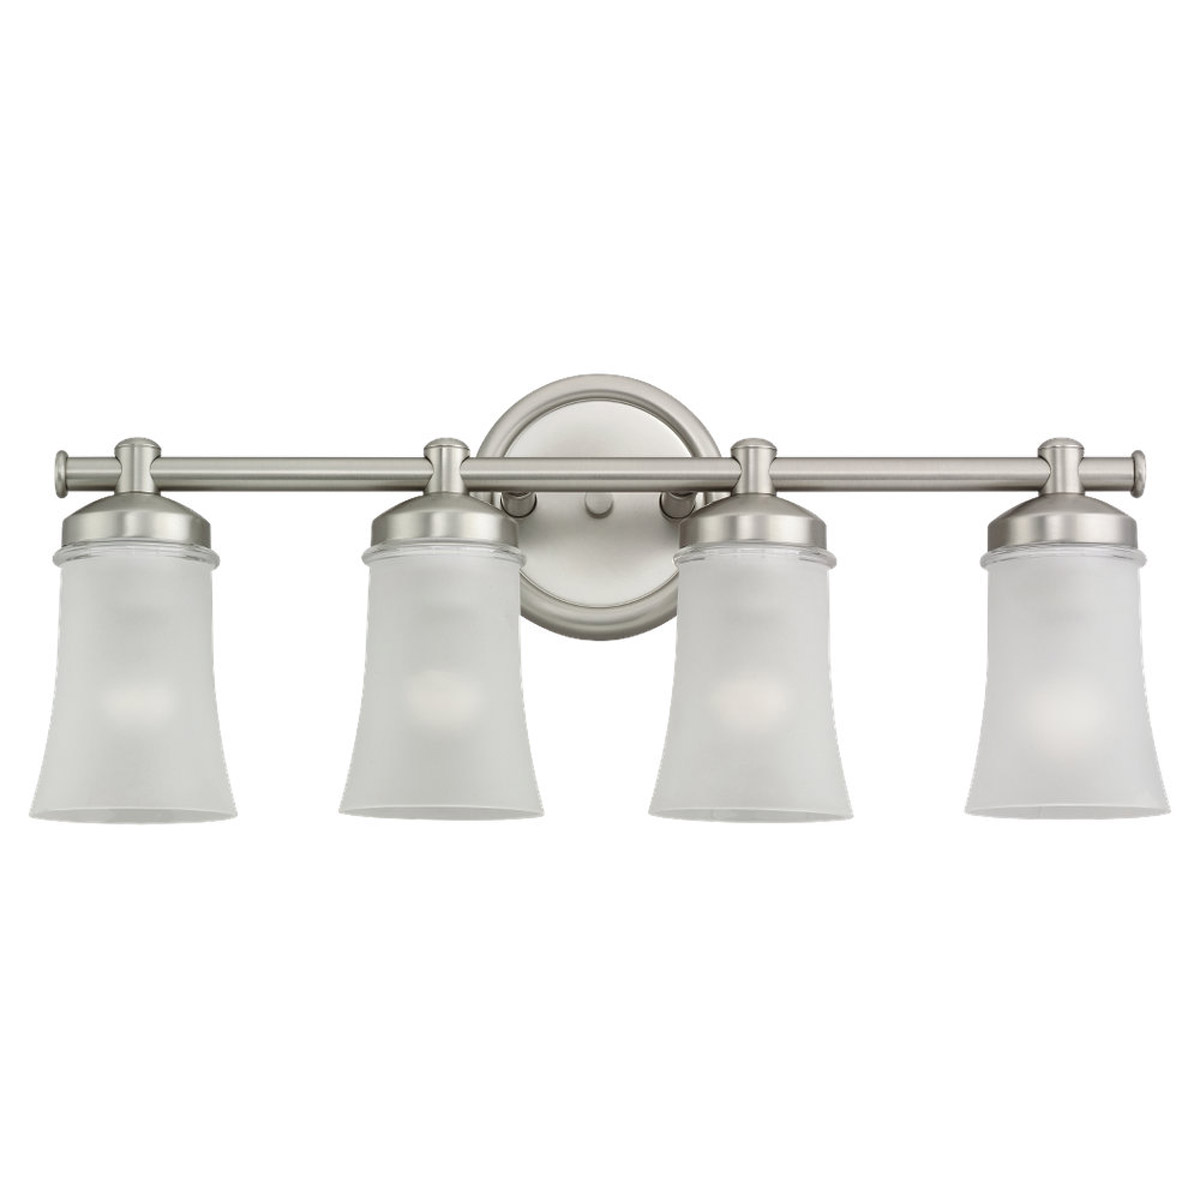 Sea Gull Lighting Newport 4 Light Bath Vanity in Antique Brushed Nickel 44485BLE-965